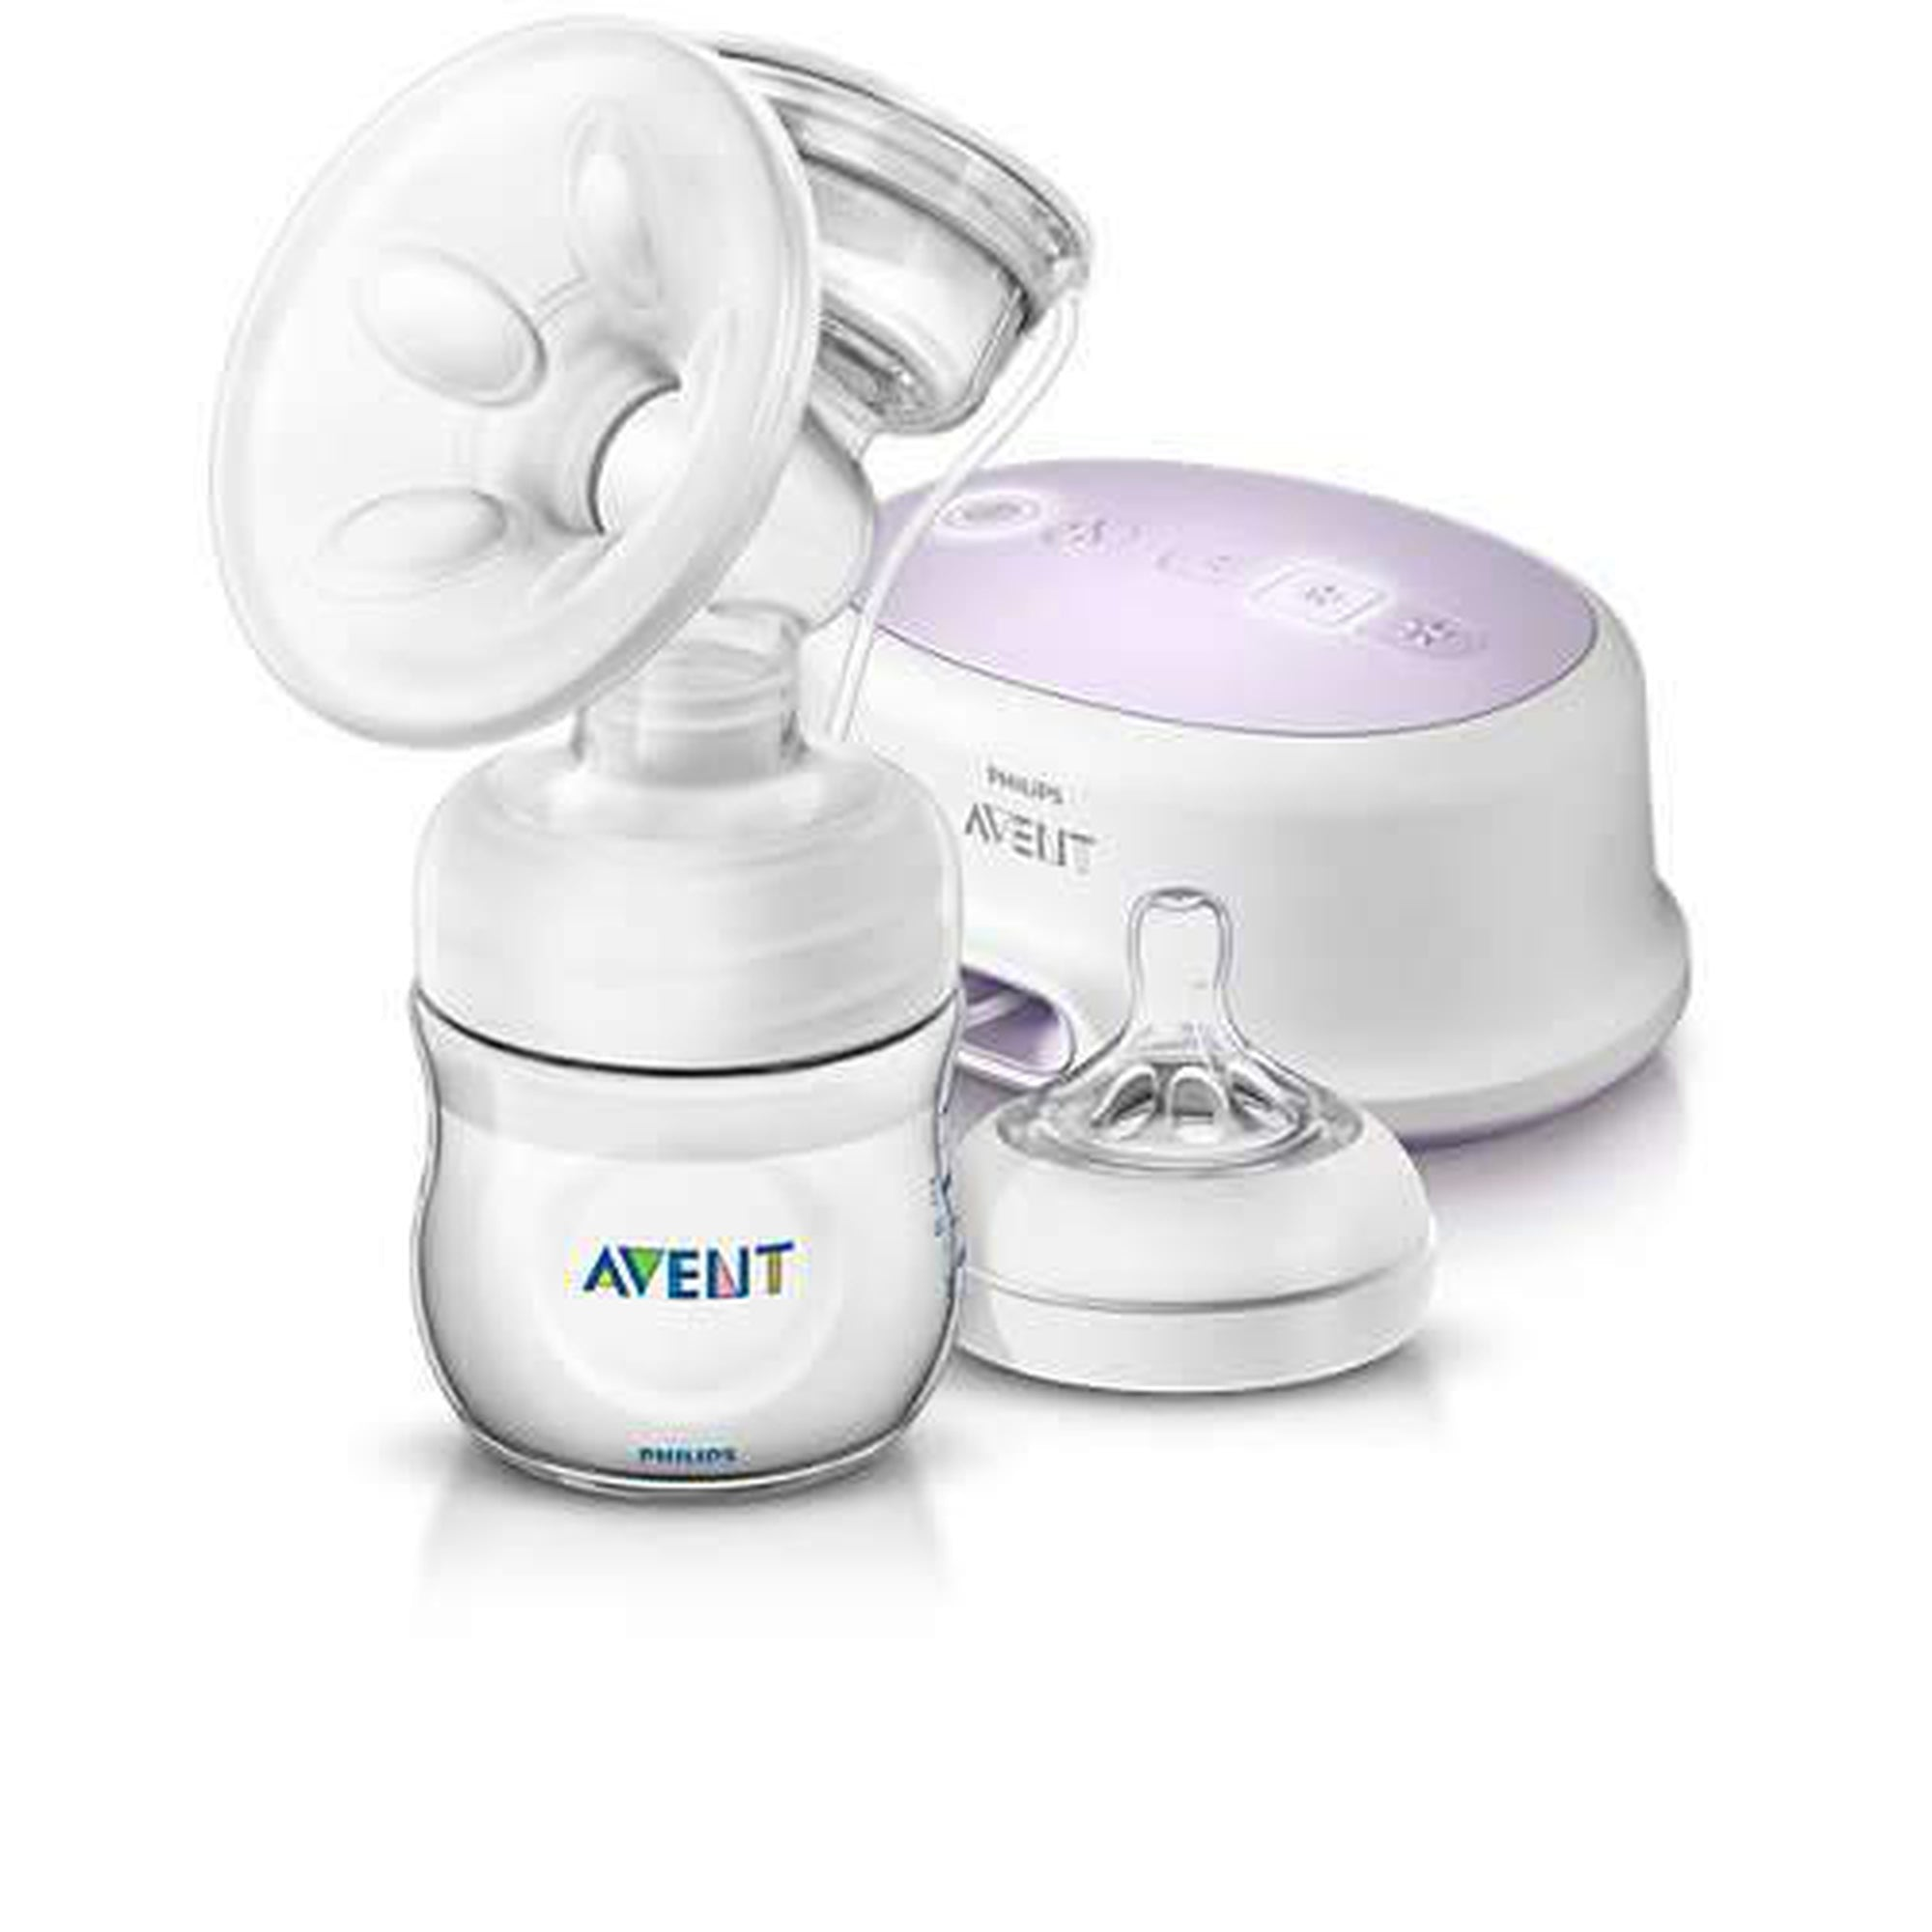 Avent Natural Single Electric Breast Pump-Breast Pumps-Mother and Baby Shop Kenya's #1 Online Baby Shop